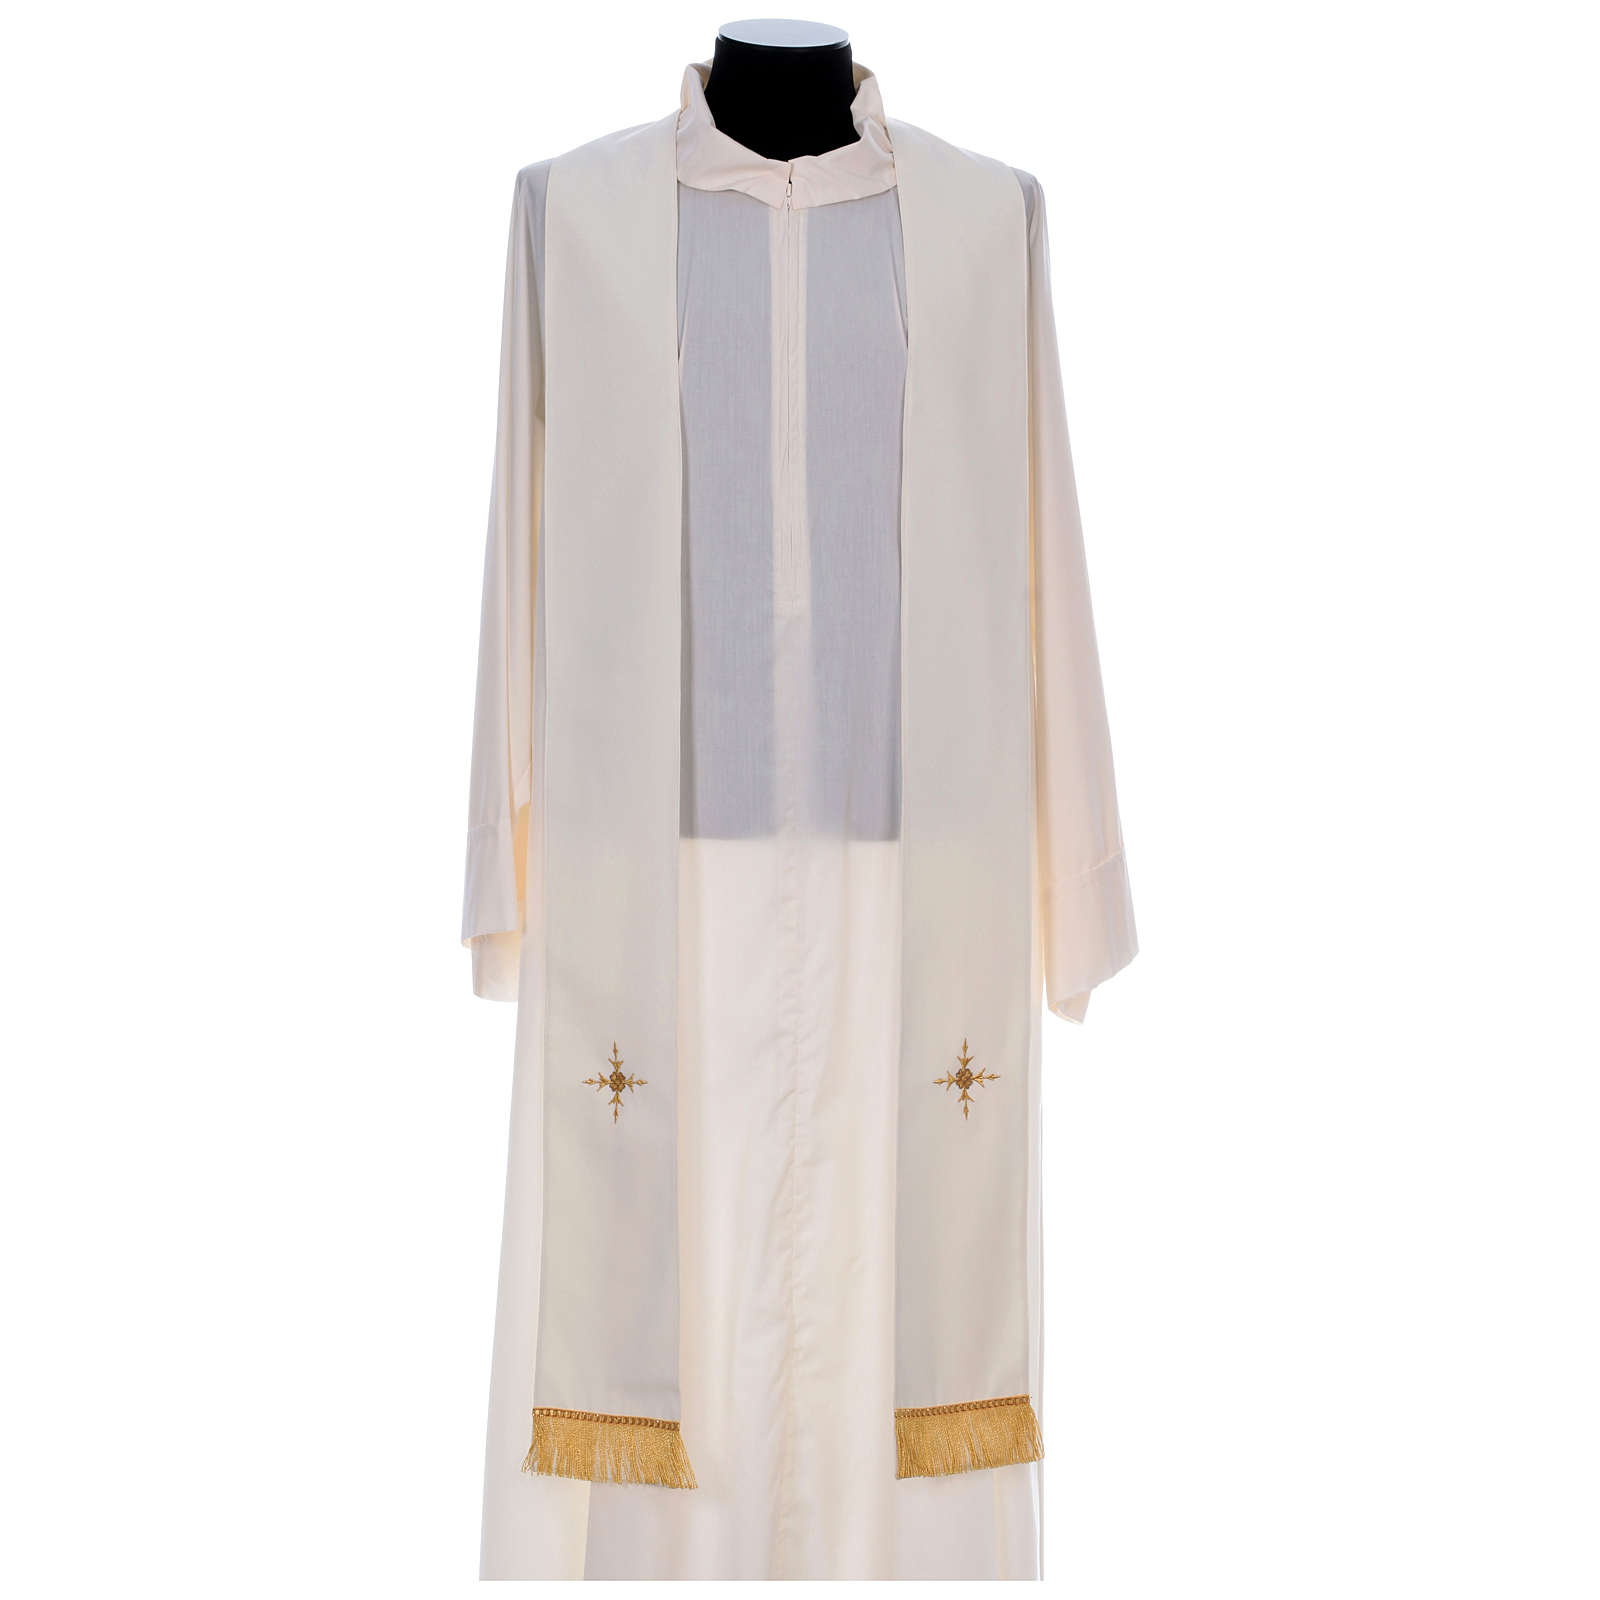 Catholic Priest Chasuble in 100% polyester with damask filigree stole and three crosses 4